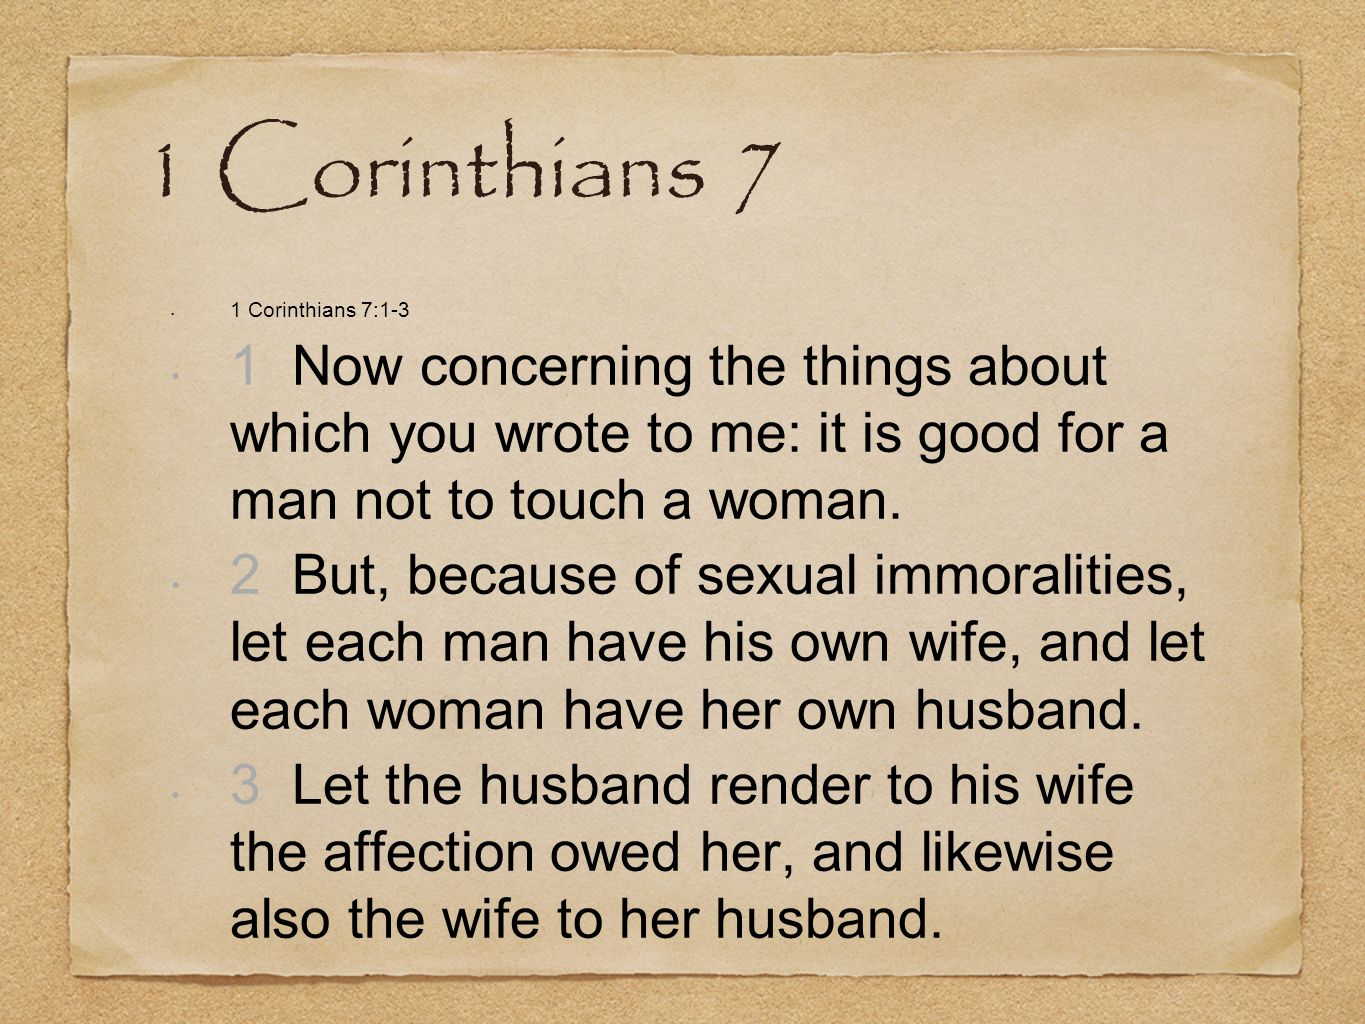 1 Corinthians 71 Corinthians 7:1-3. 1 Now concerning the things about which you wrote to me: it is good for a man not to touch a woman.